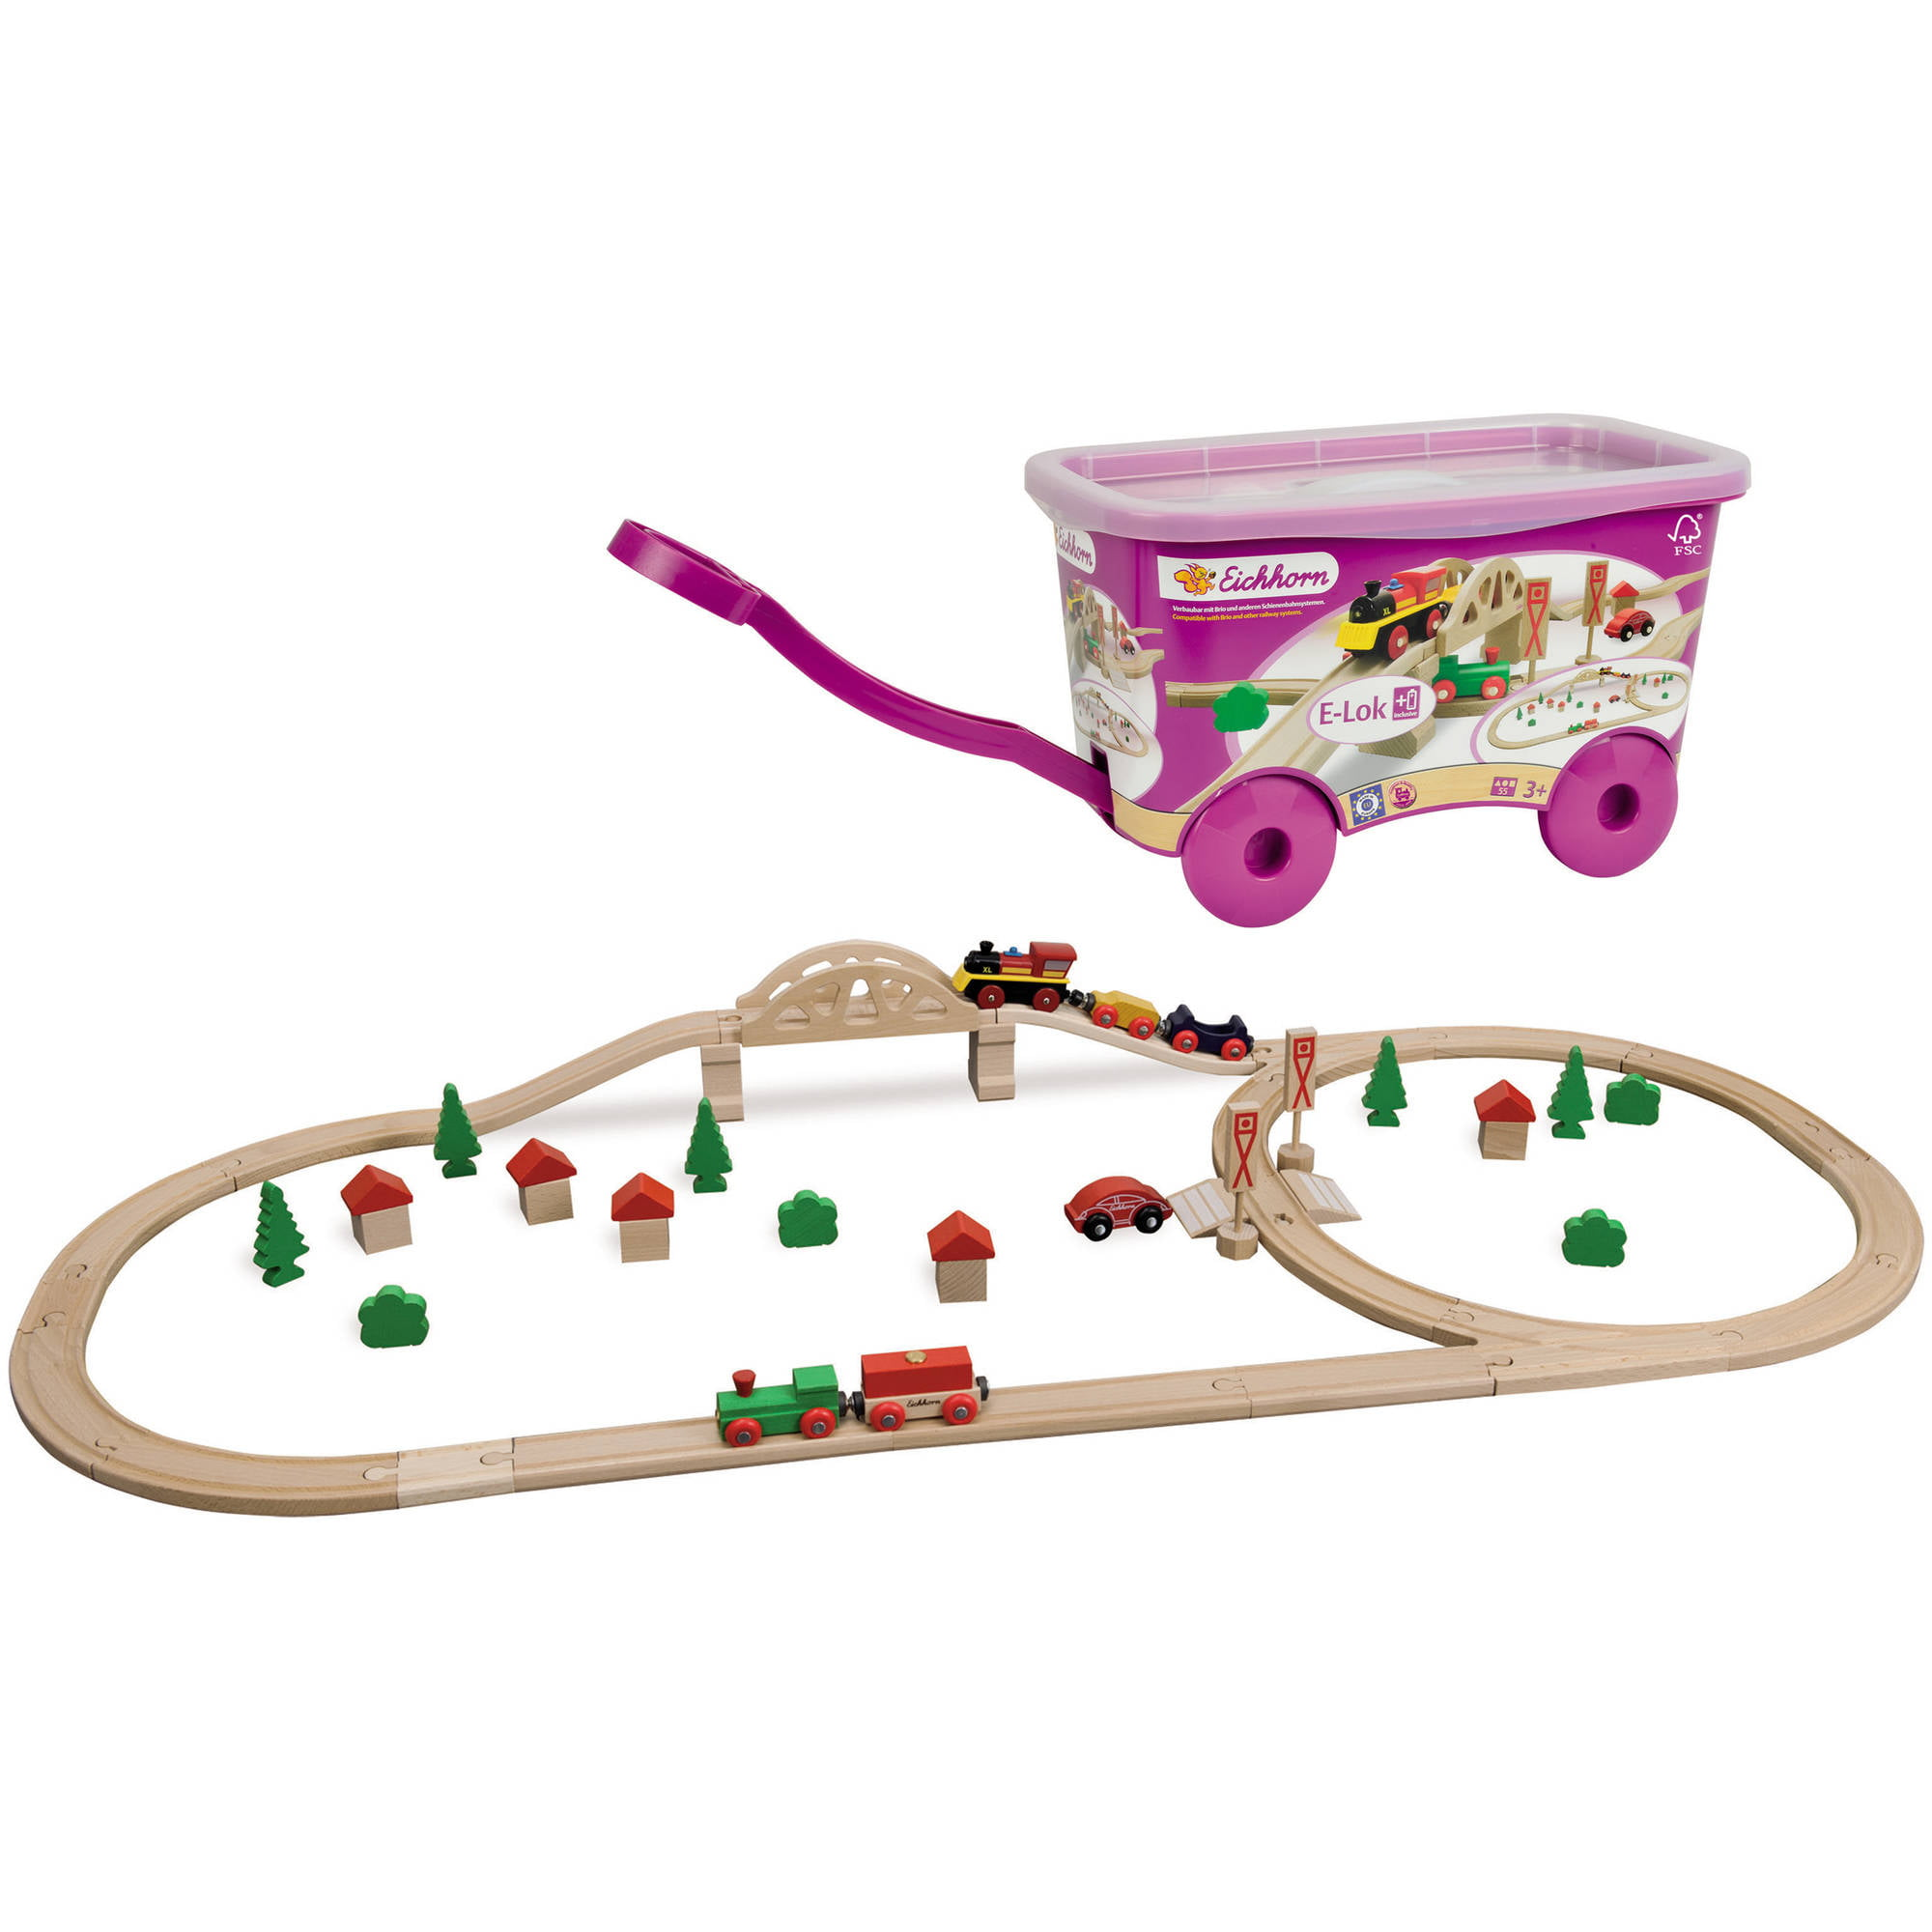 Eichhorn 55-Piece Wooden Train Set with Bridge and Storable Wagon - Walmart.com